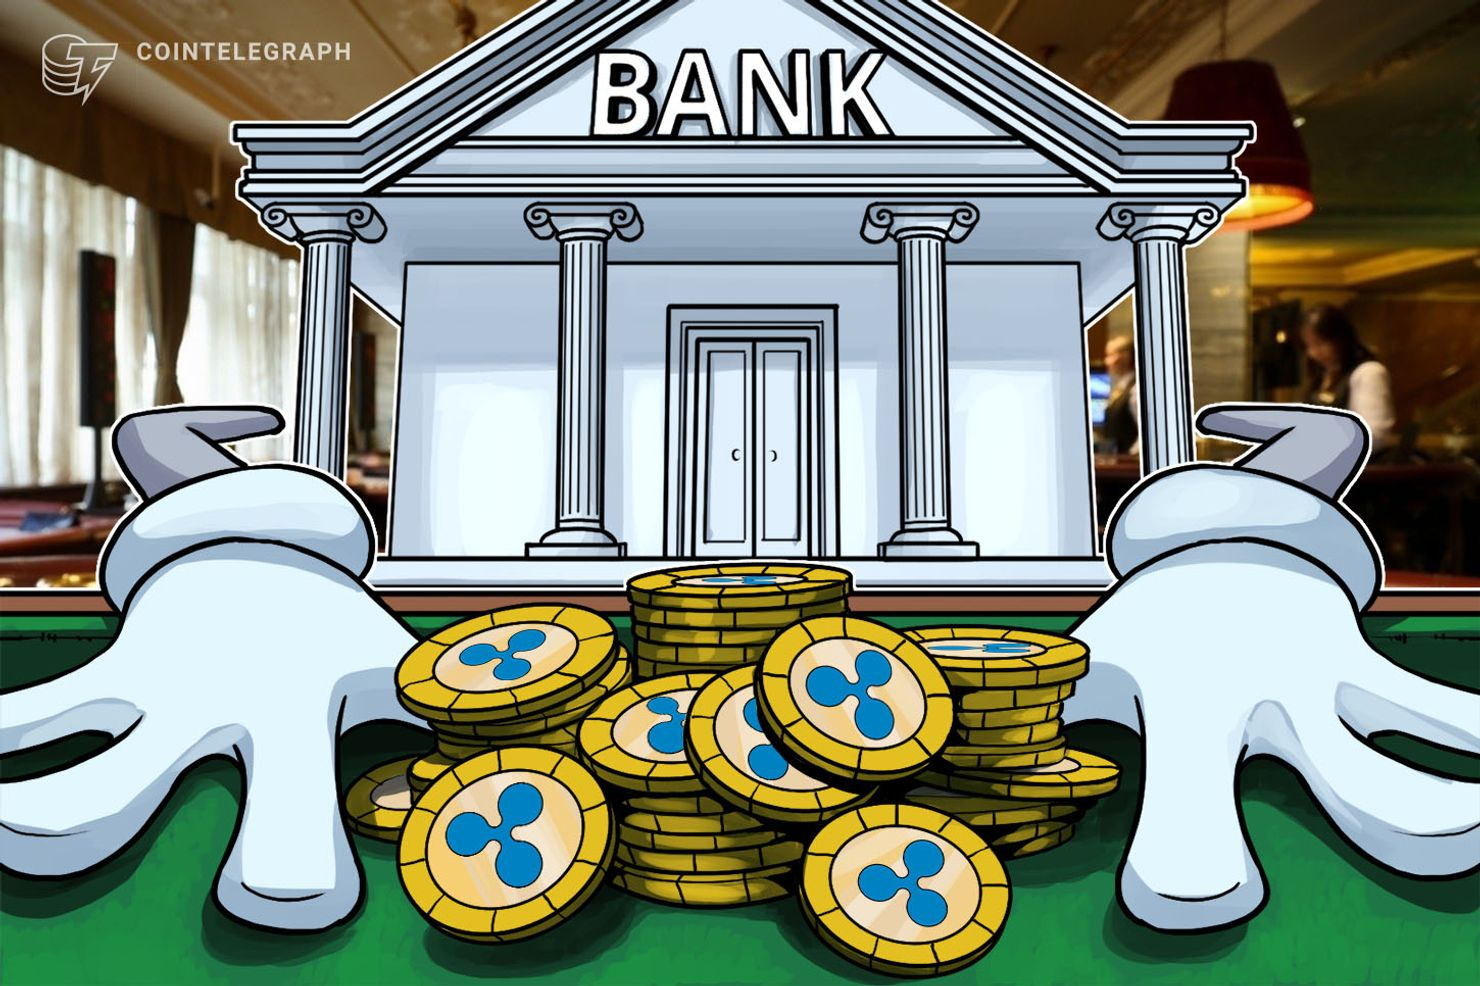 US Financial Giant PNC to Use Ripple Technology for International Payments